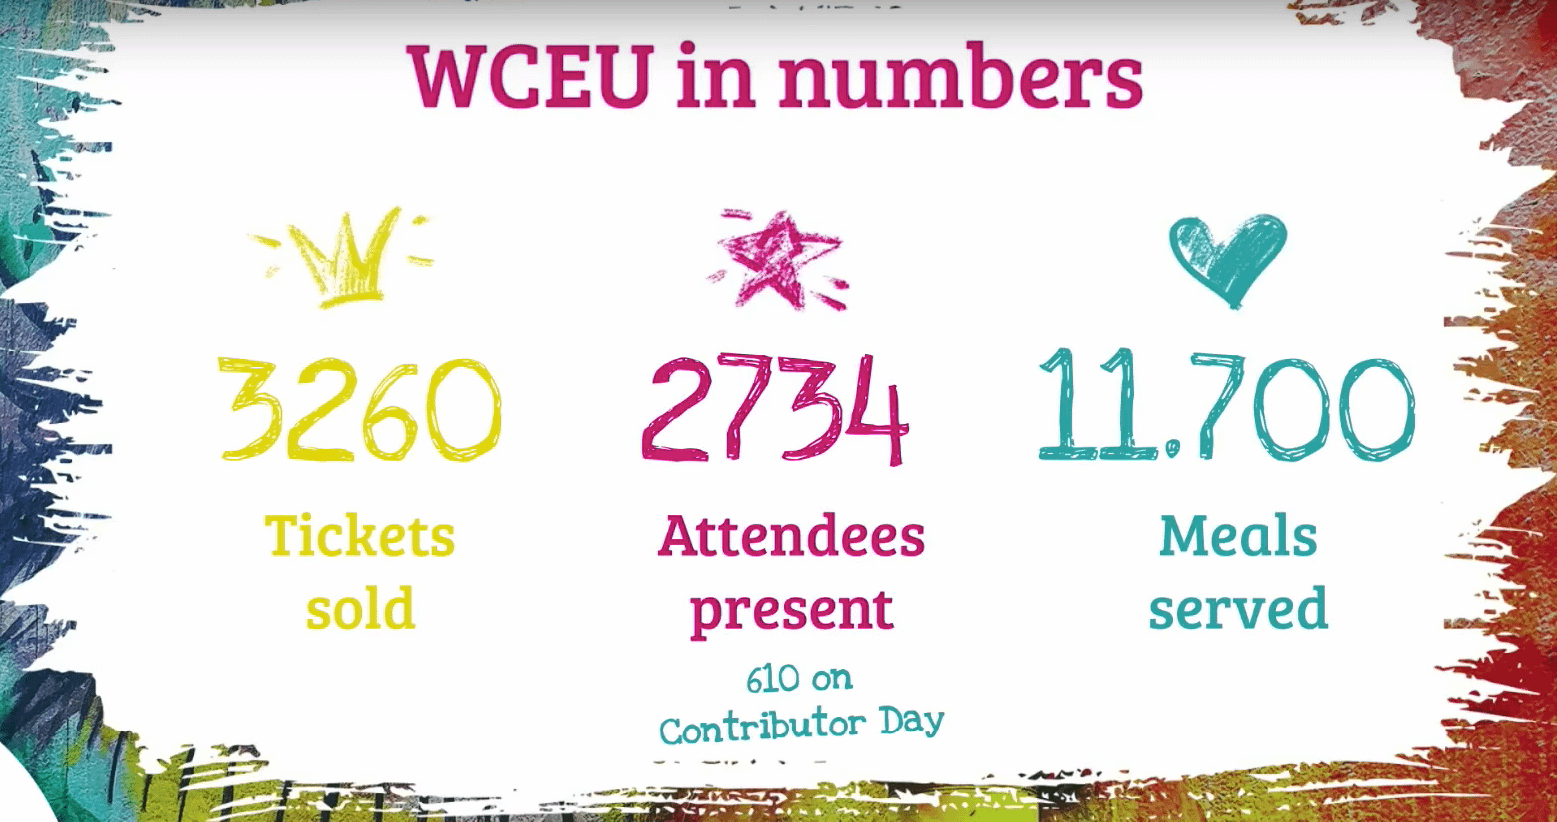 The highest attendee and contributor day numbers in 8 years of WordCamp Europe